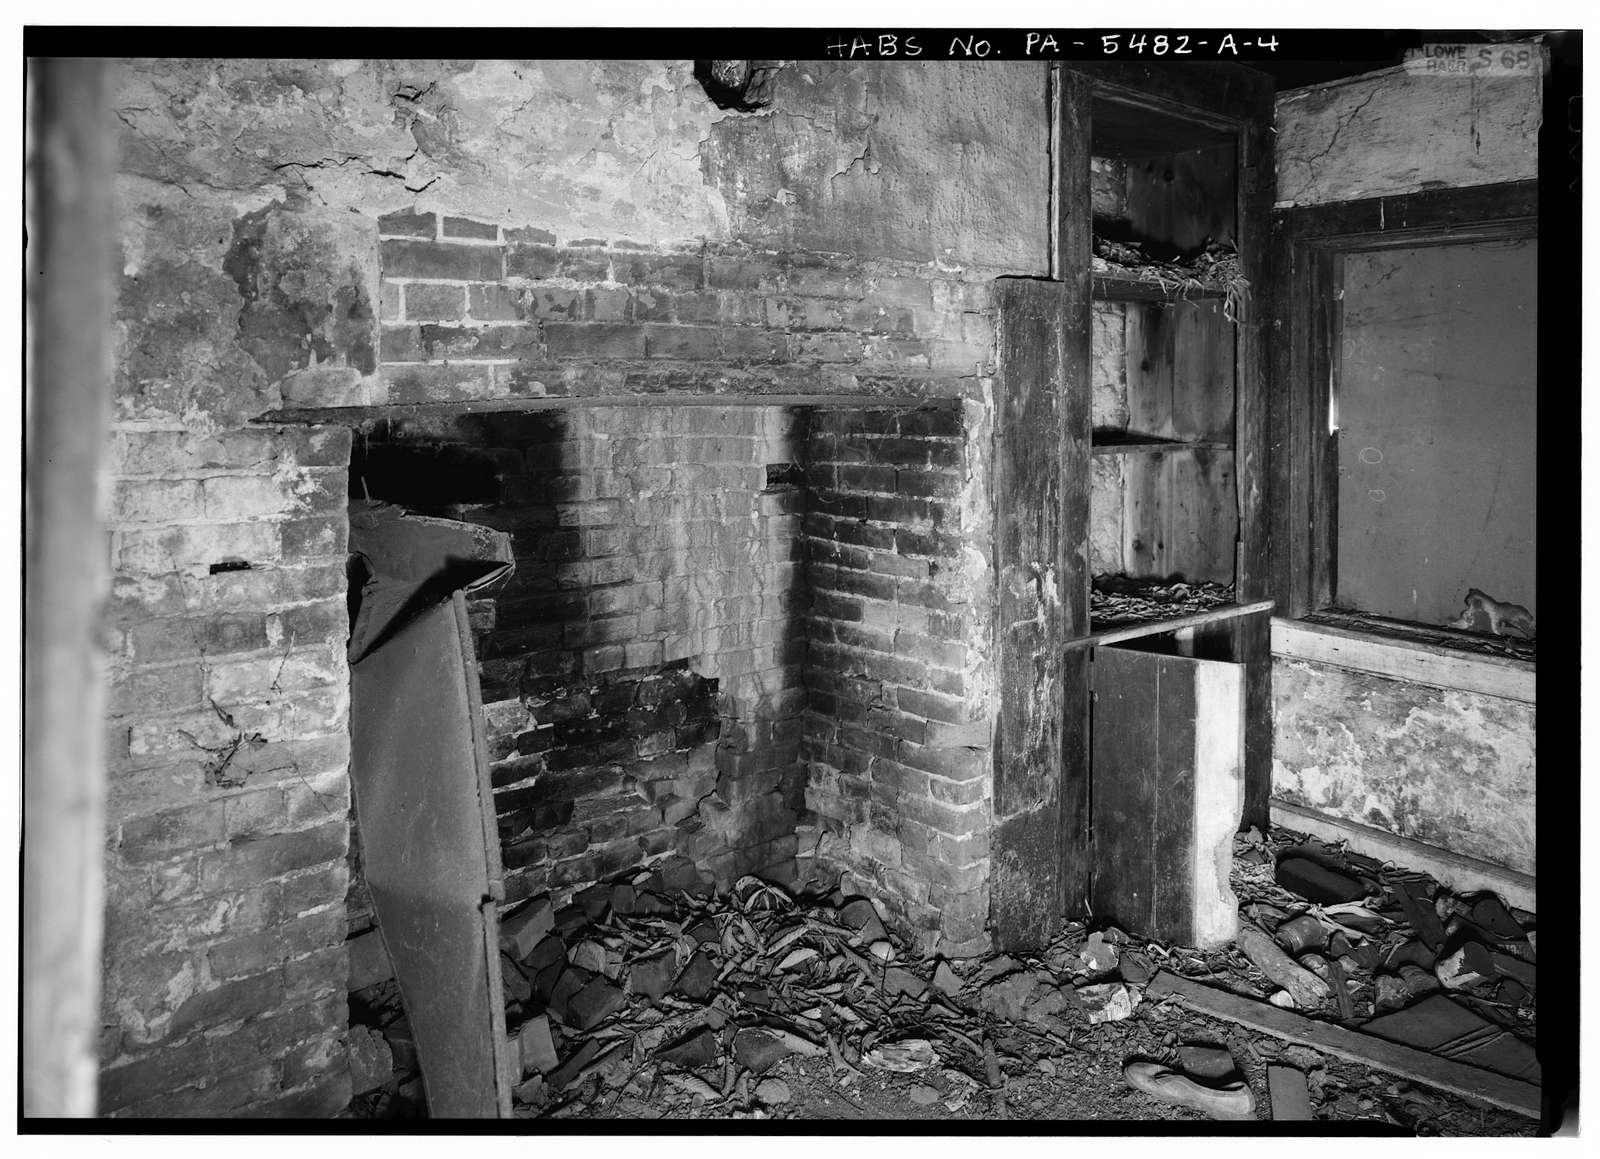 Levi Springer Smoke House-Spring House-Summer Kitchen, Fan Hollow Road, Uniontown, Fayette County, PA